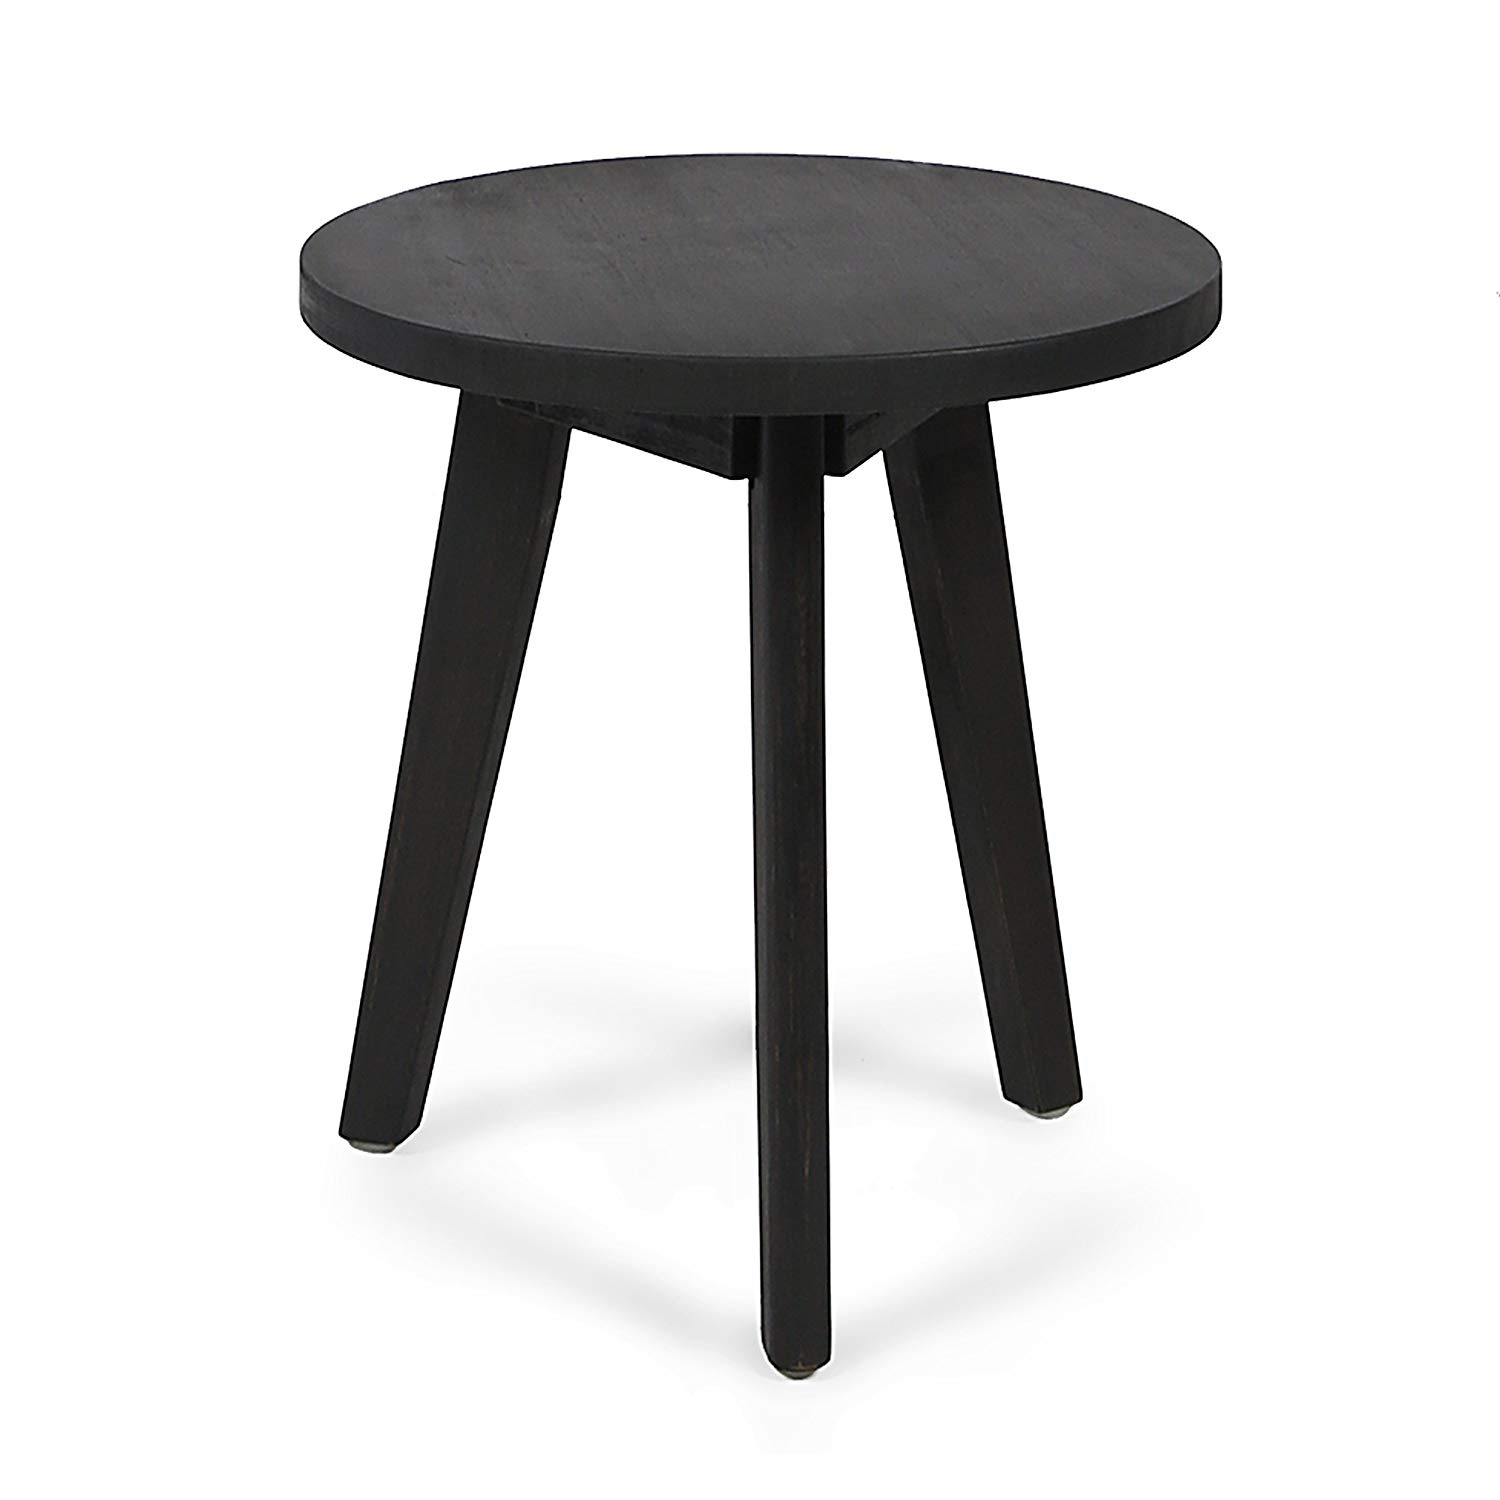 gino outdoor acacia wood side table dark gray finish little black end tables glass display case coffee modern furniture portland cork block accent round metal with top inch